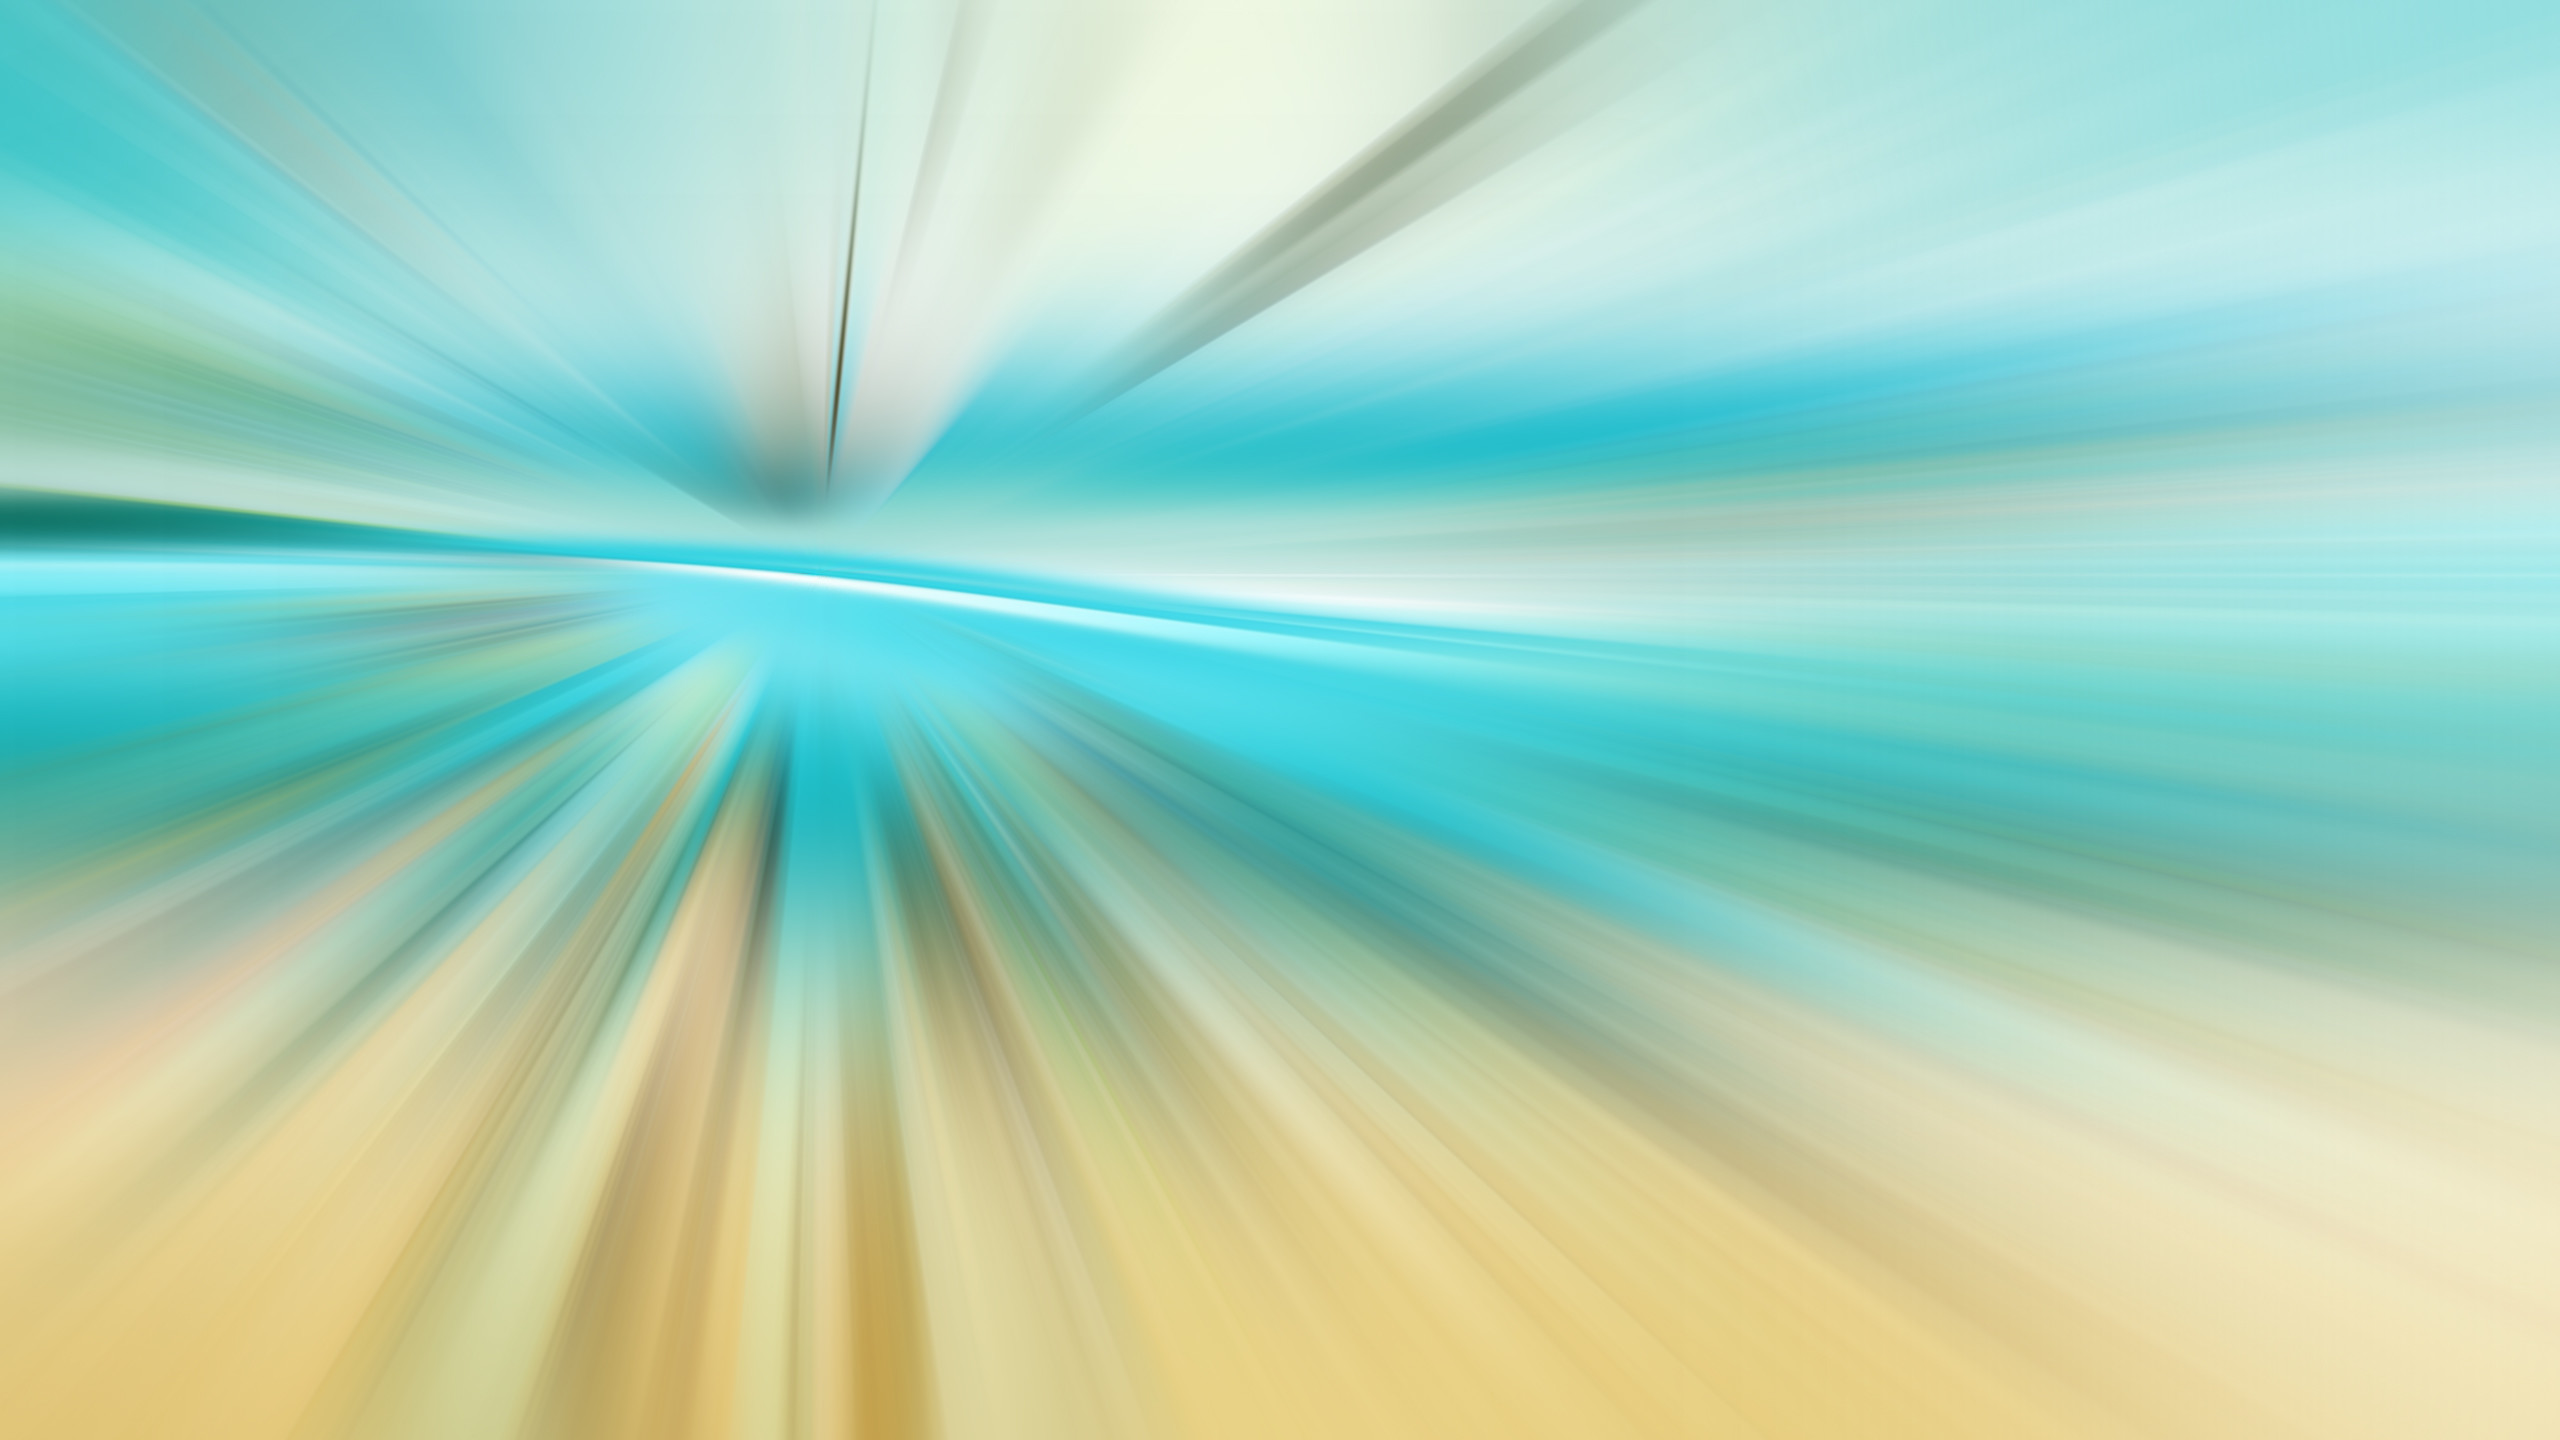 2560x1440 Radial Zoom Blur Abstract Wallpaper